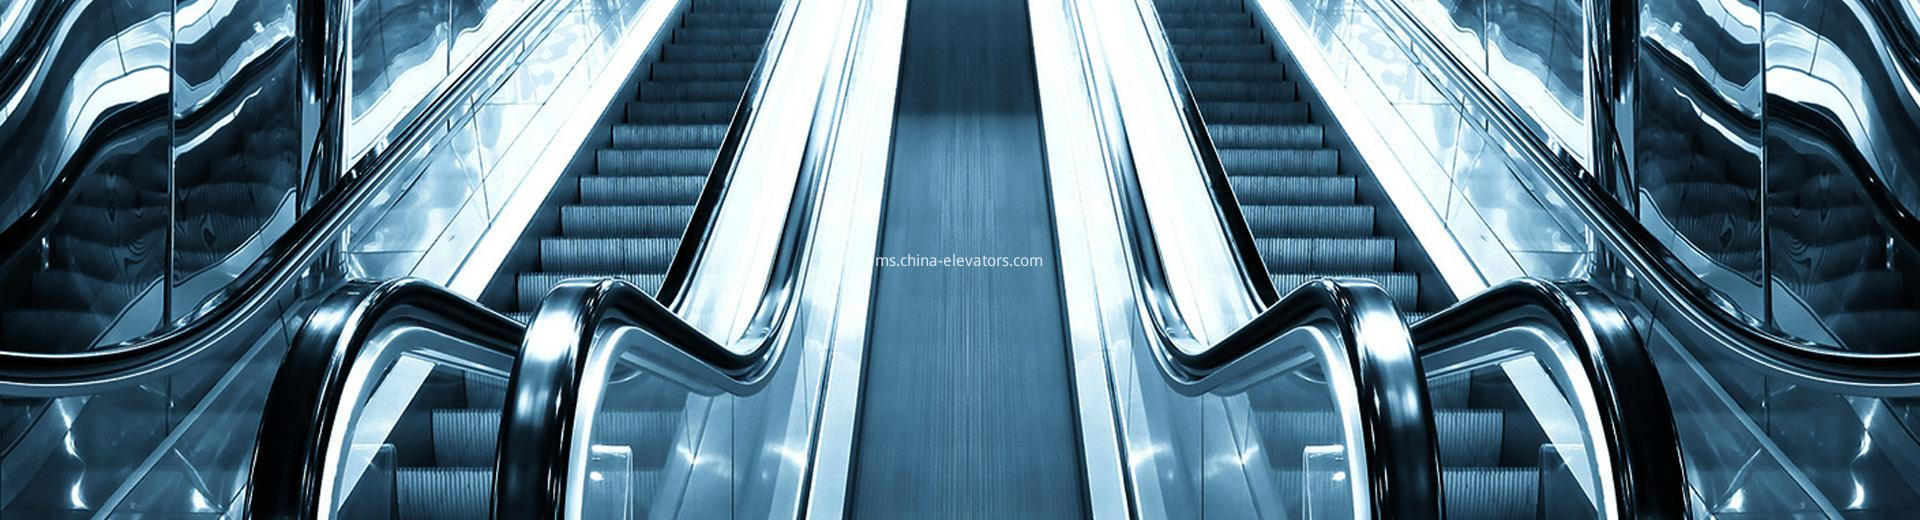 Escalator Spare Parts